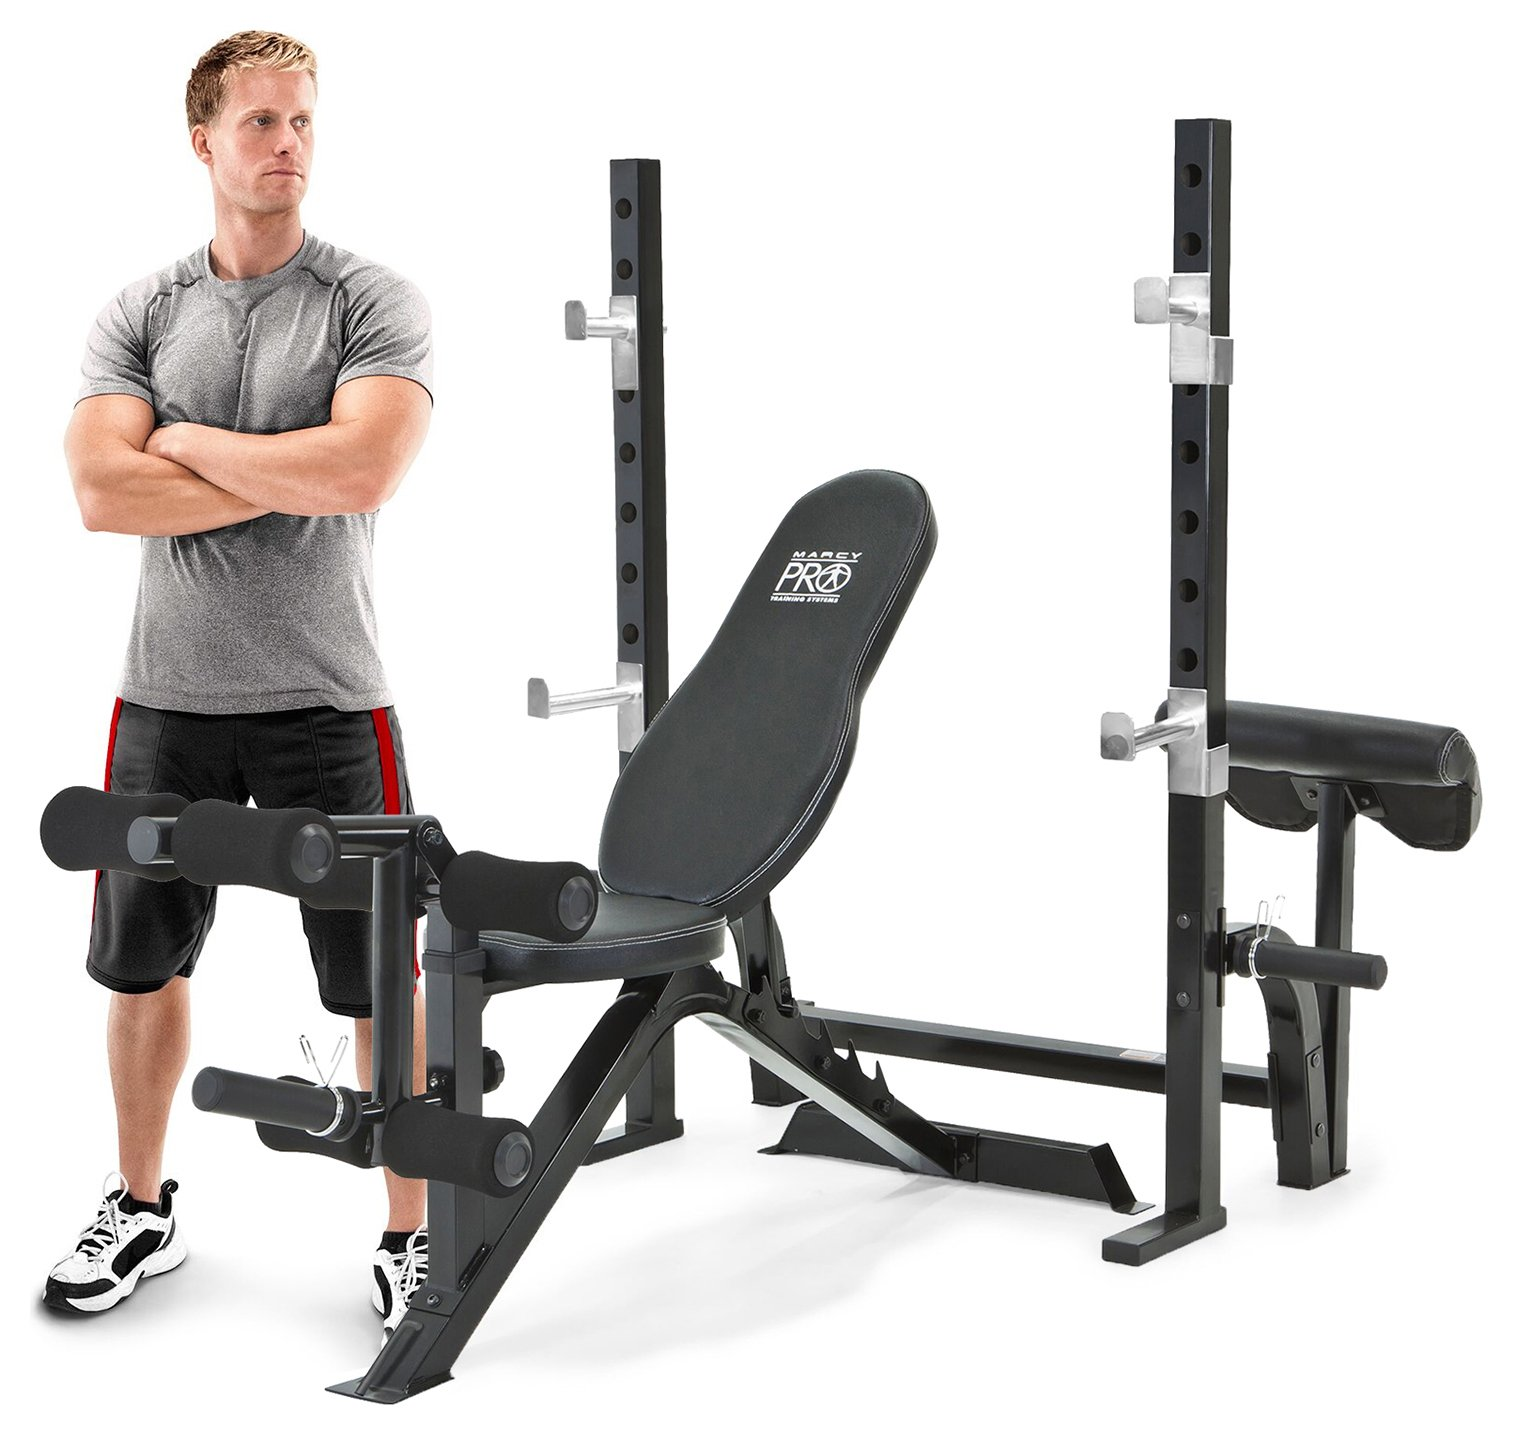 Marcy Pro Olympic Bench with Squat Rack